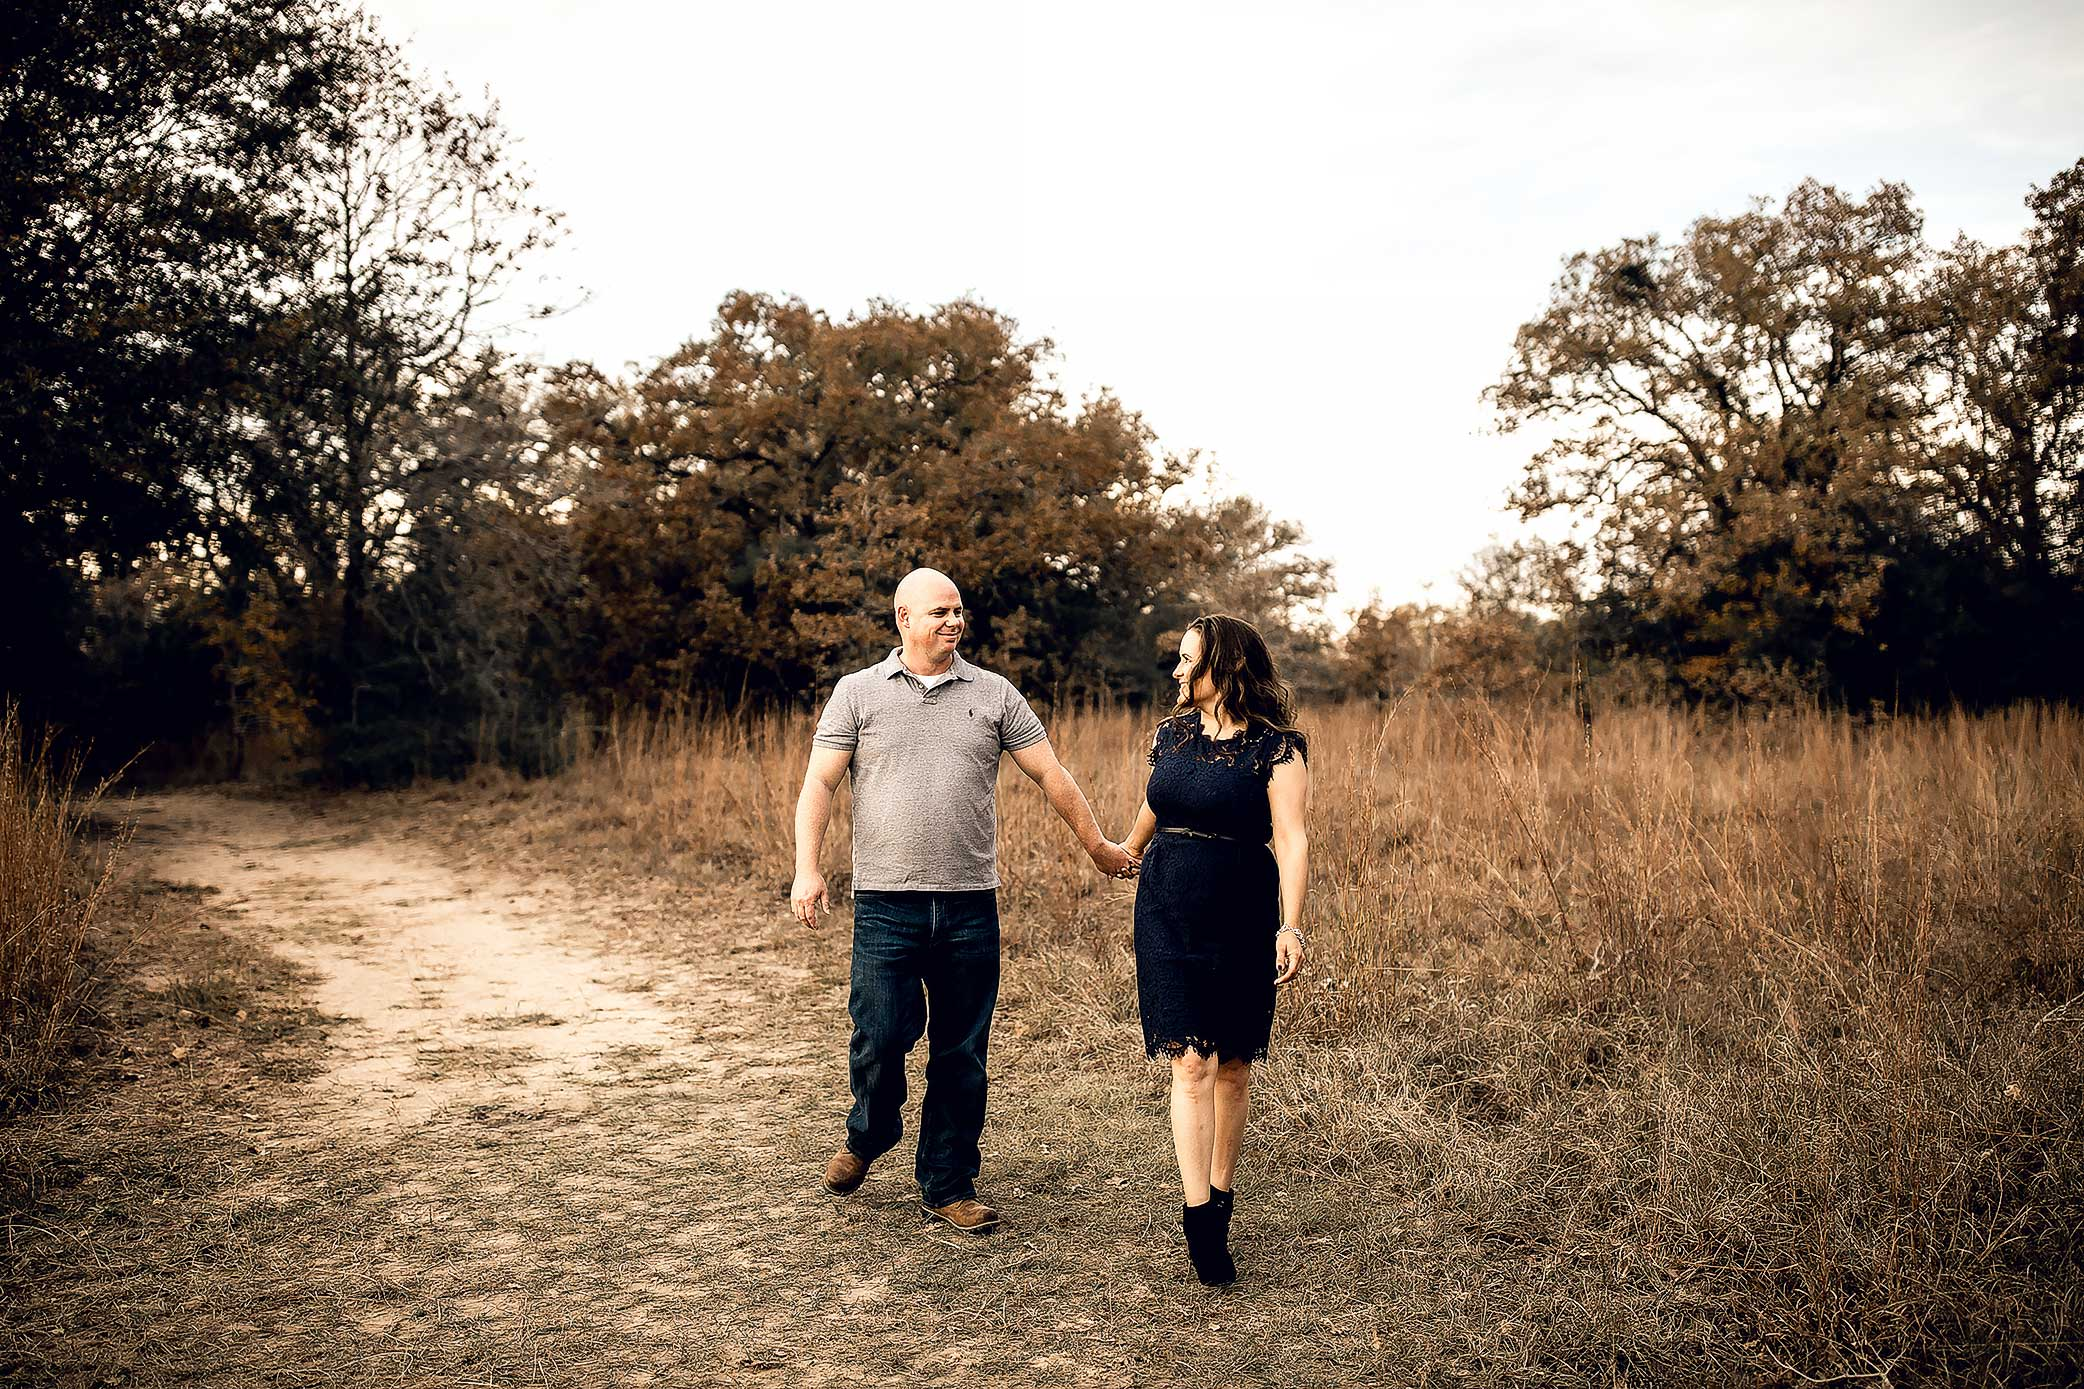 shelby-schiller-photography-couples-holding-hands-walking-together.jpg